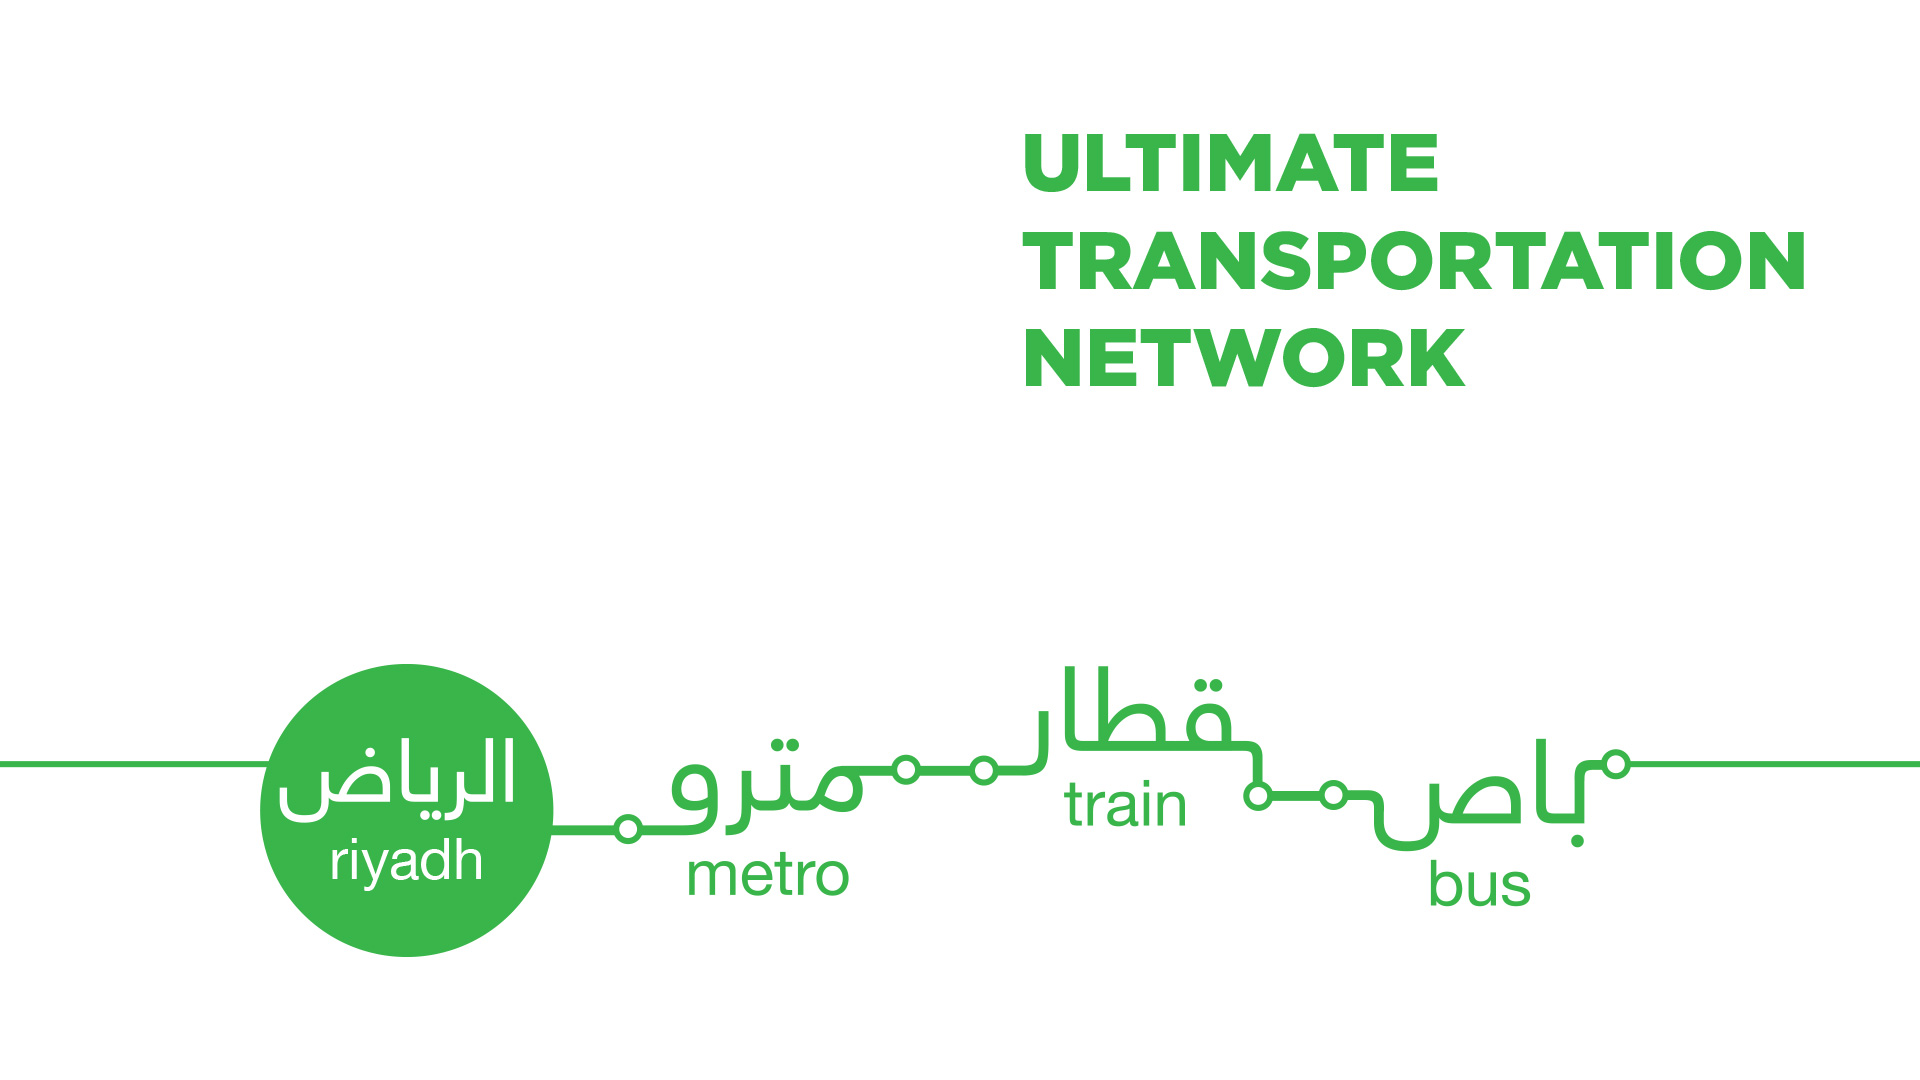 3RiyadhMetro_CommunicationIllustration3